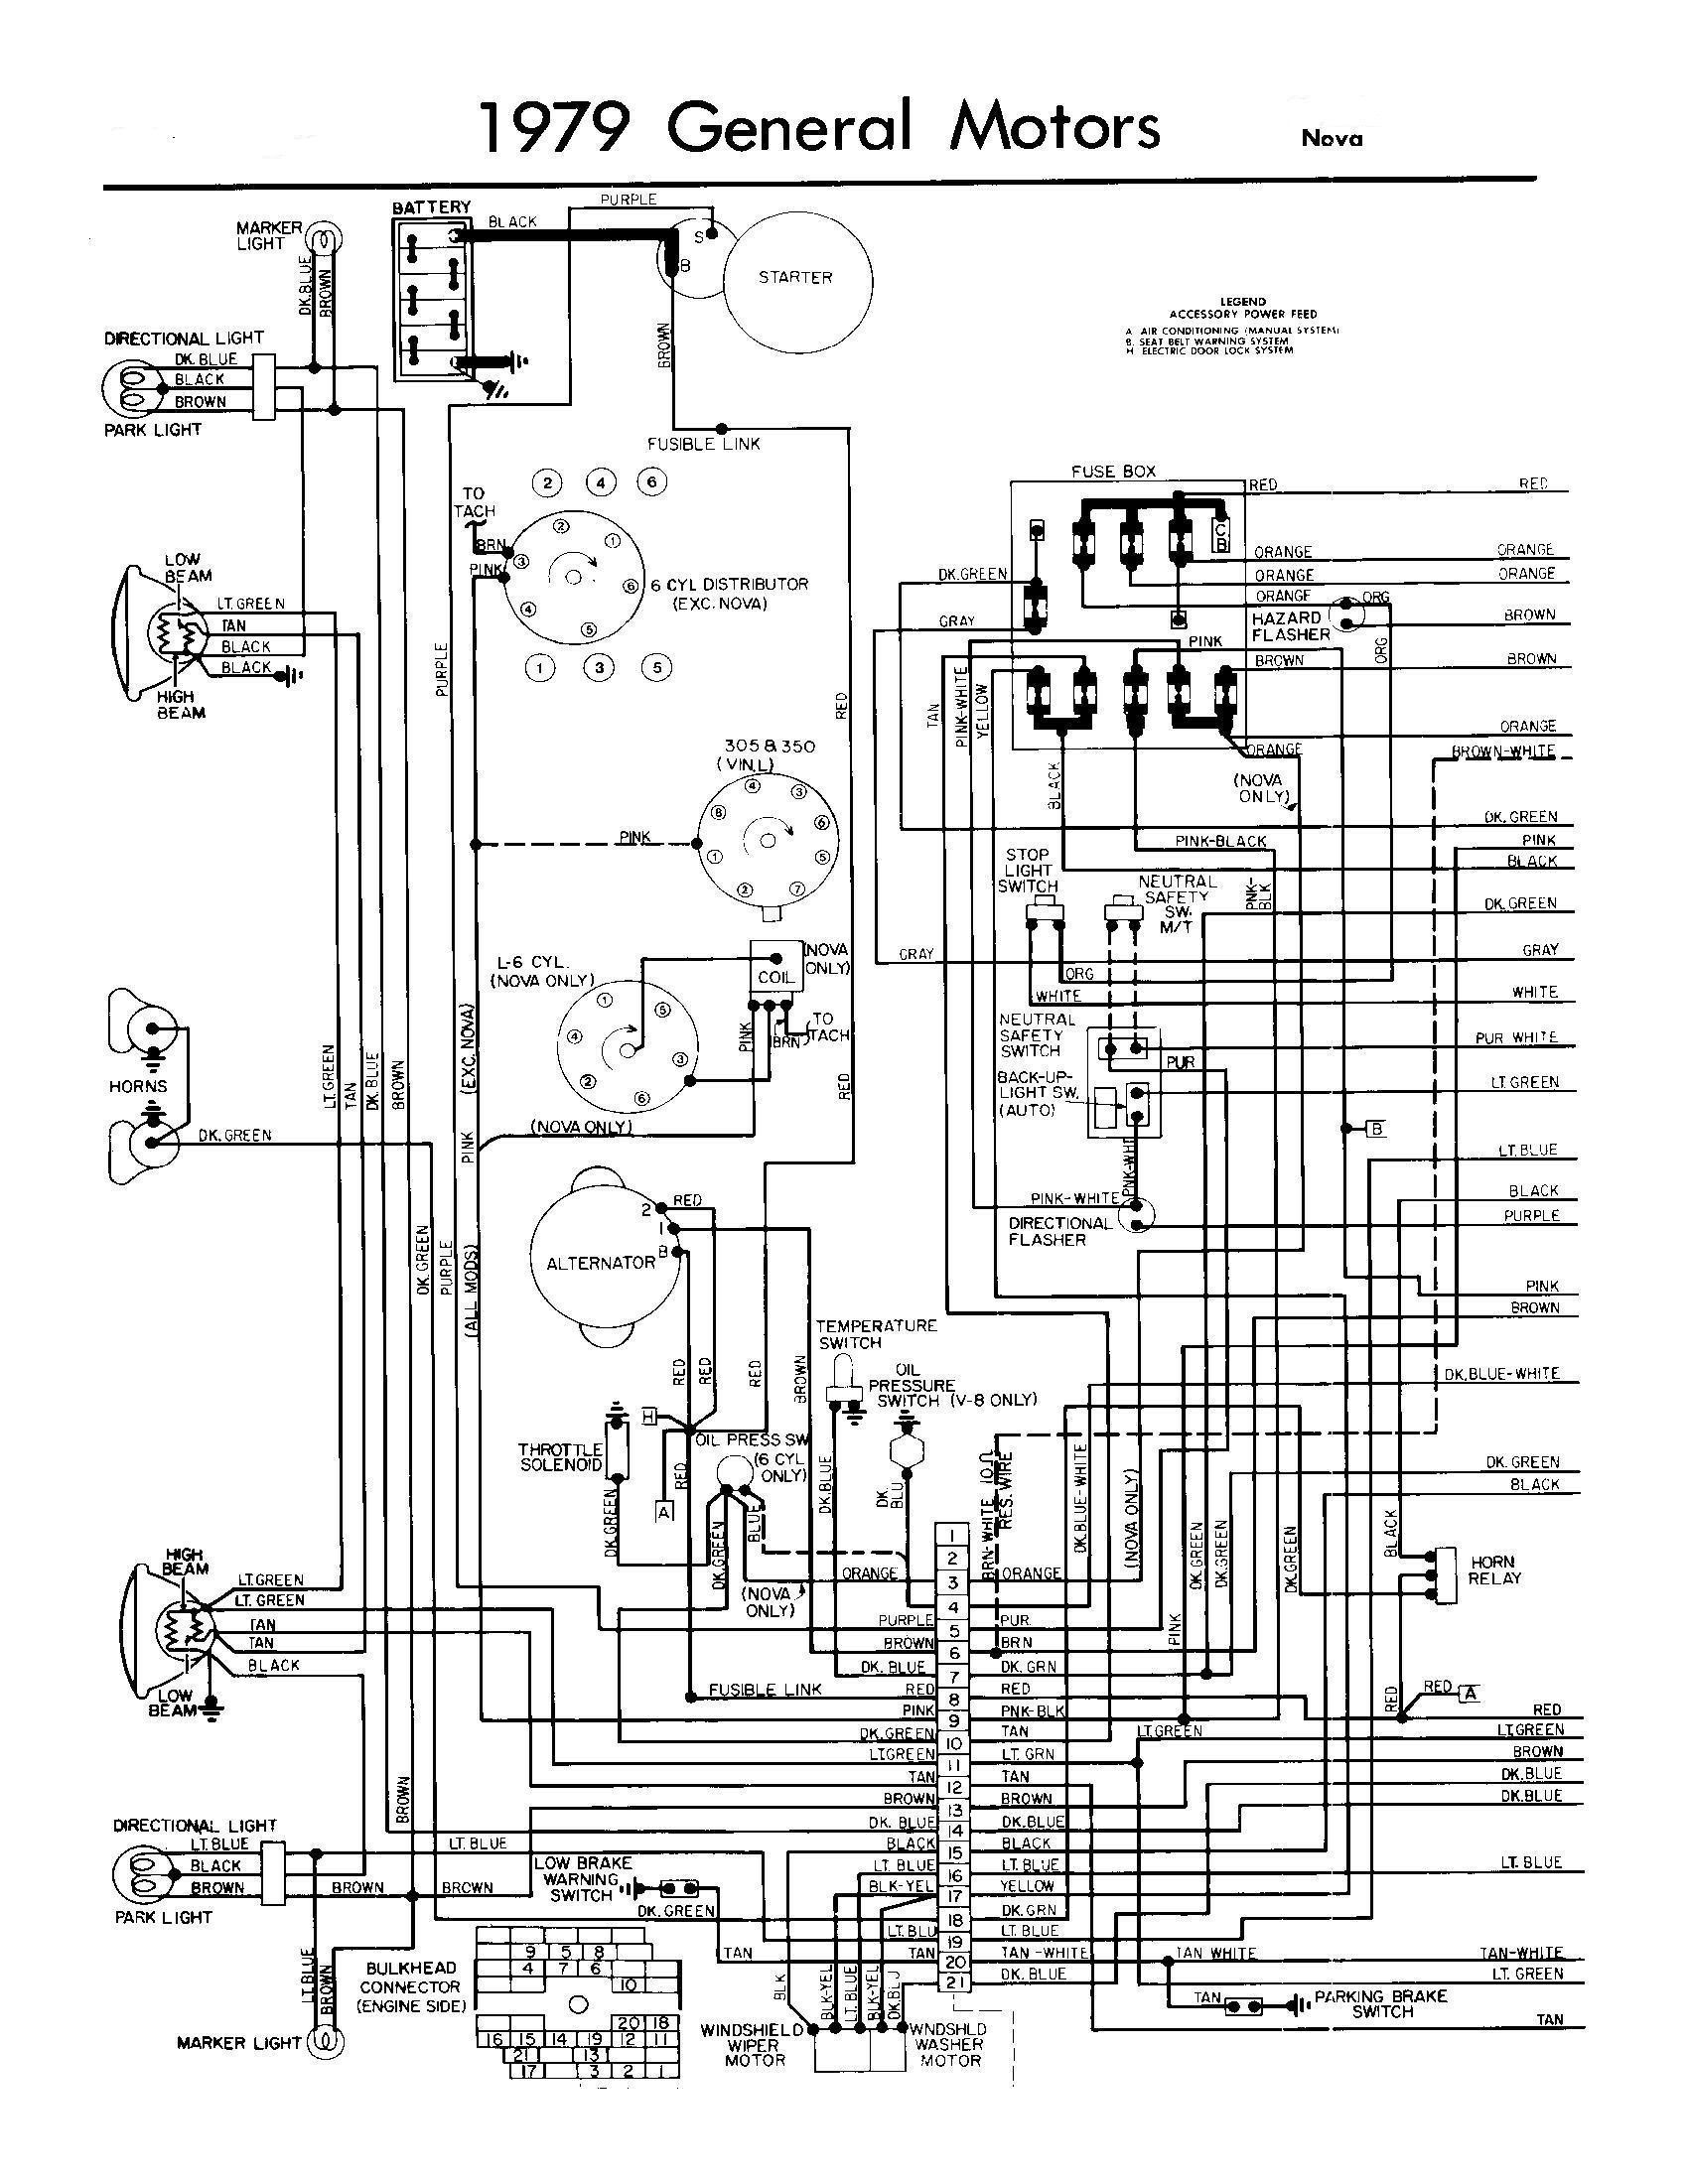 1991 S10 Fuse Box Diagram 1982 Chevy Worksheet And Wiring 79 Http Wwwpic2flycom 1979chevyfusebox Wire Rh Vsetop Co 2004